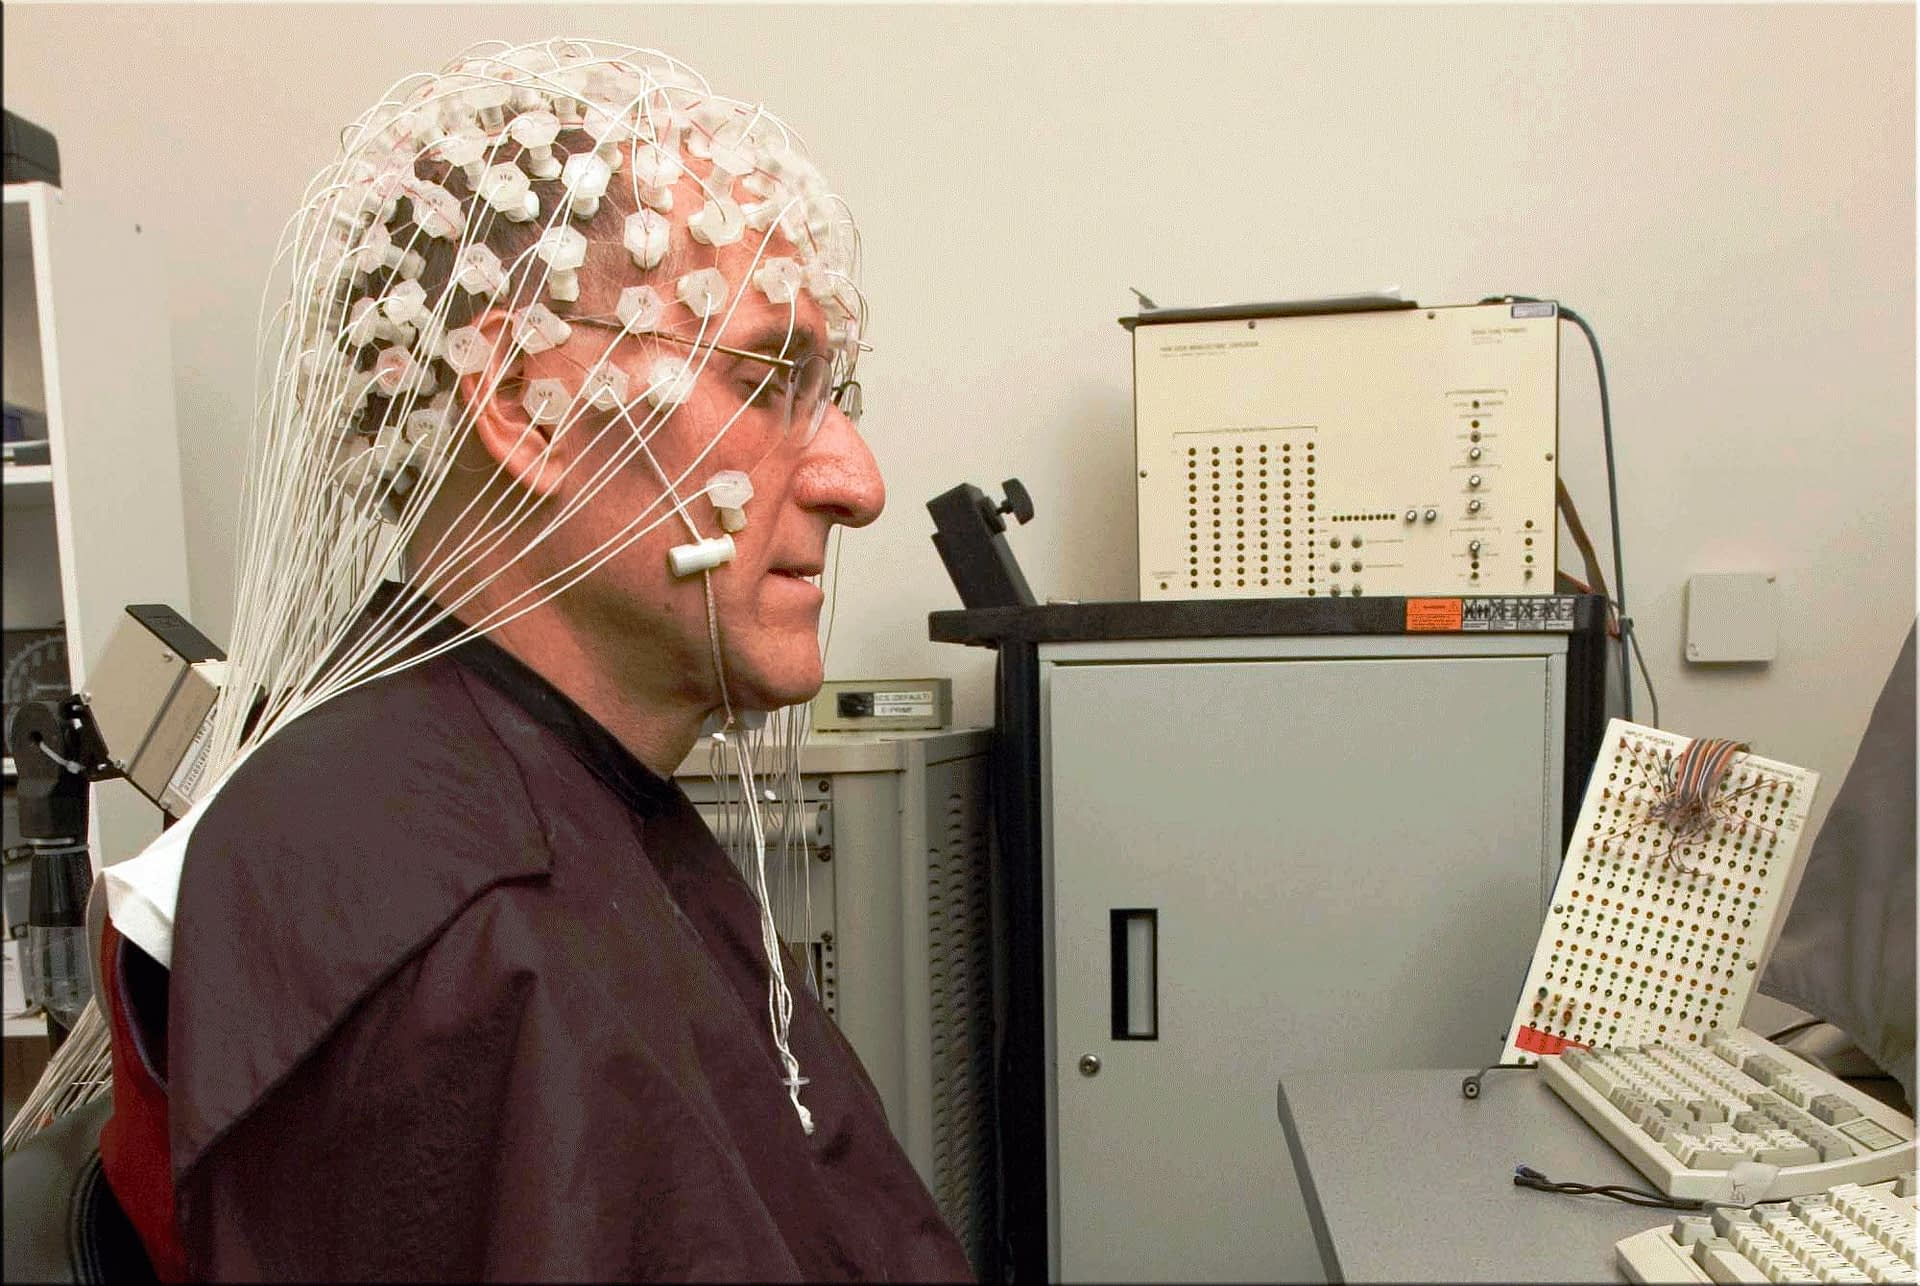 Buddhist monk breaks the scales of brain activity while meditating in a laboratory